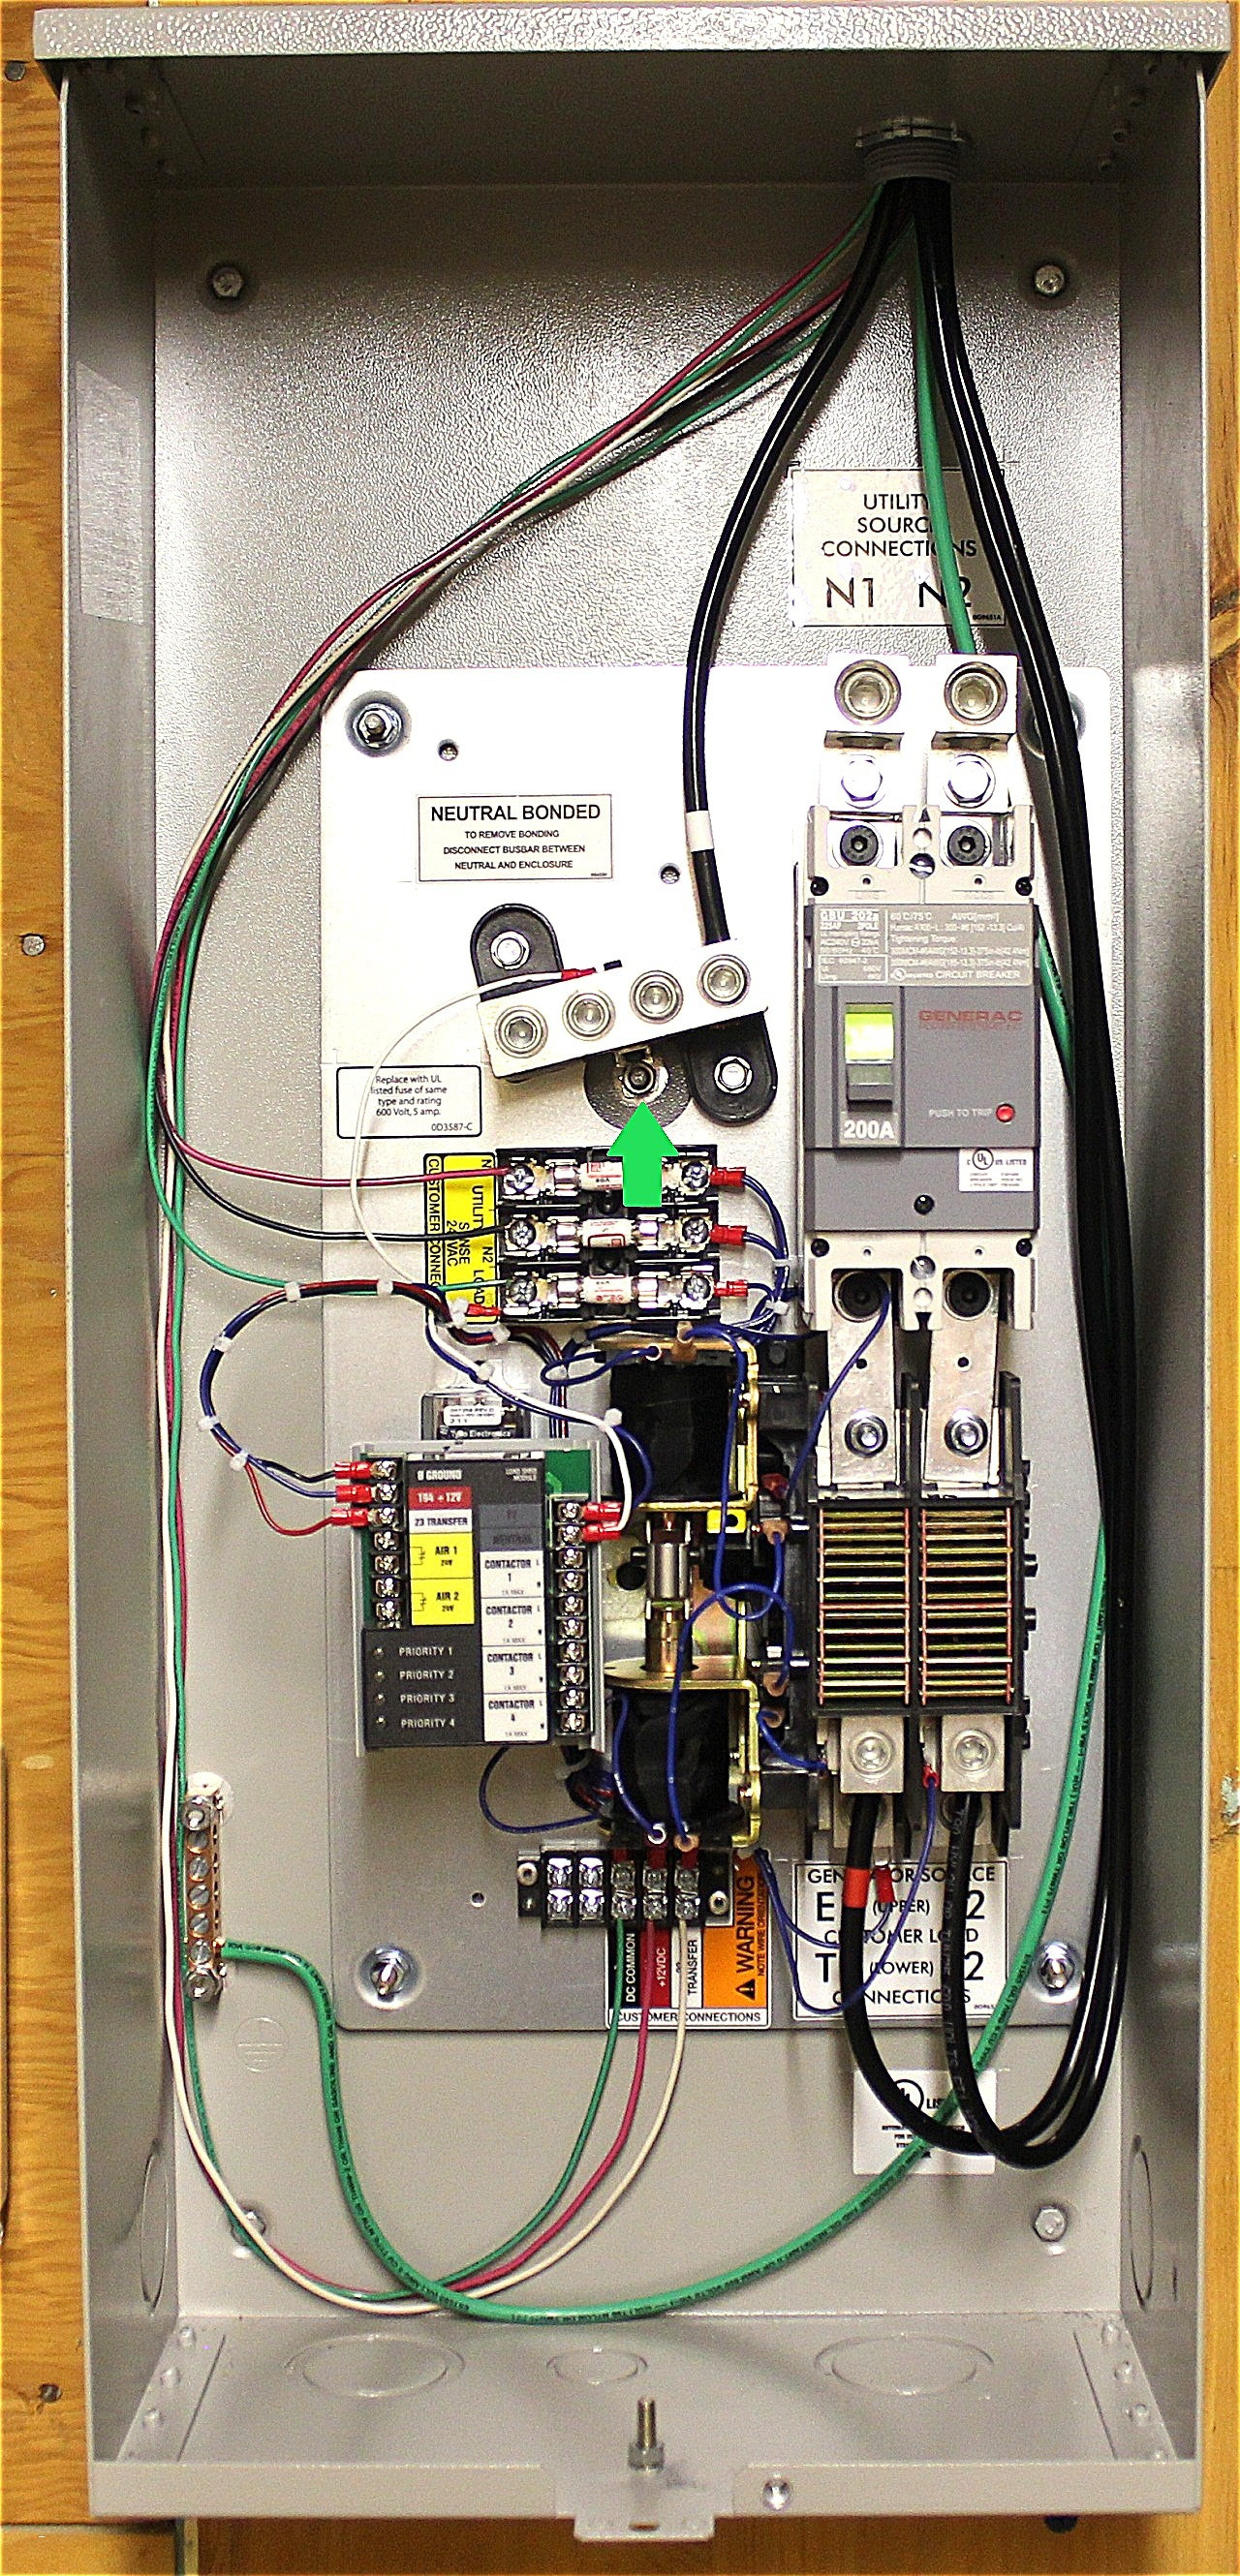 Generac Automatic Transfer Switch Wiring Diagram New Generac Ats - Generac Automatic Transfer Switch Wiring Diagram